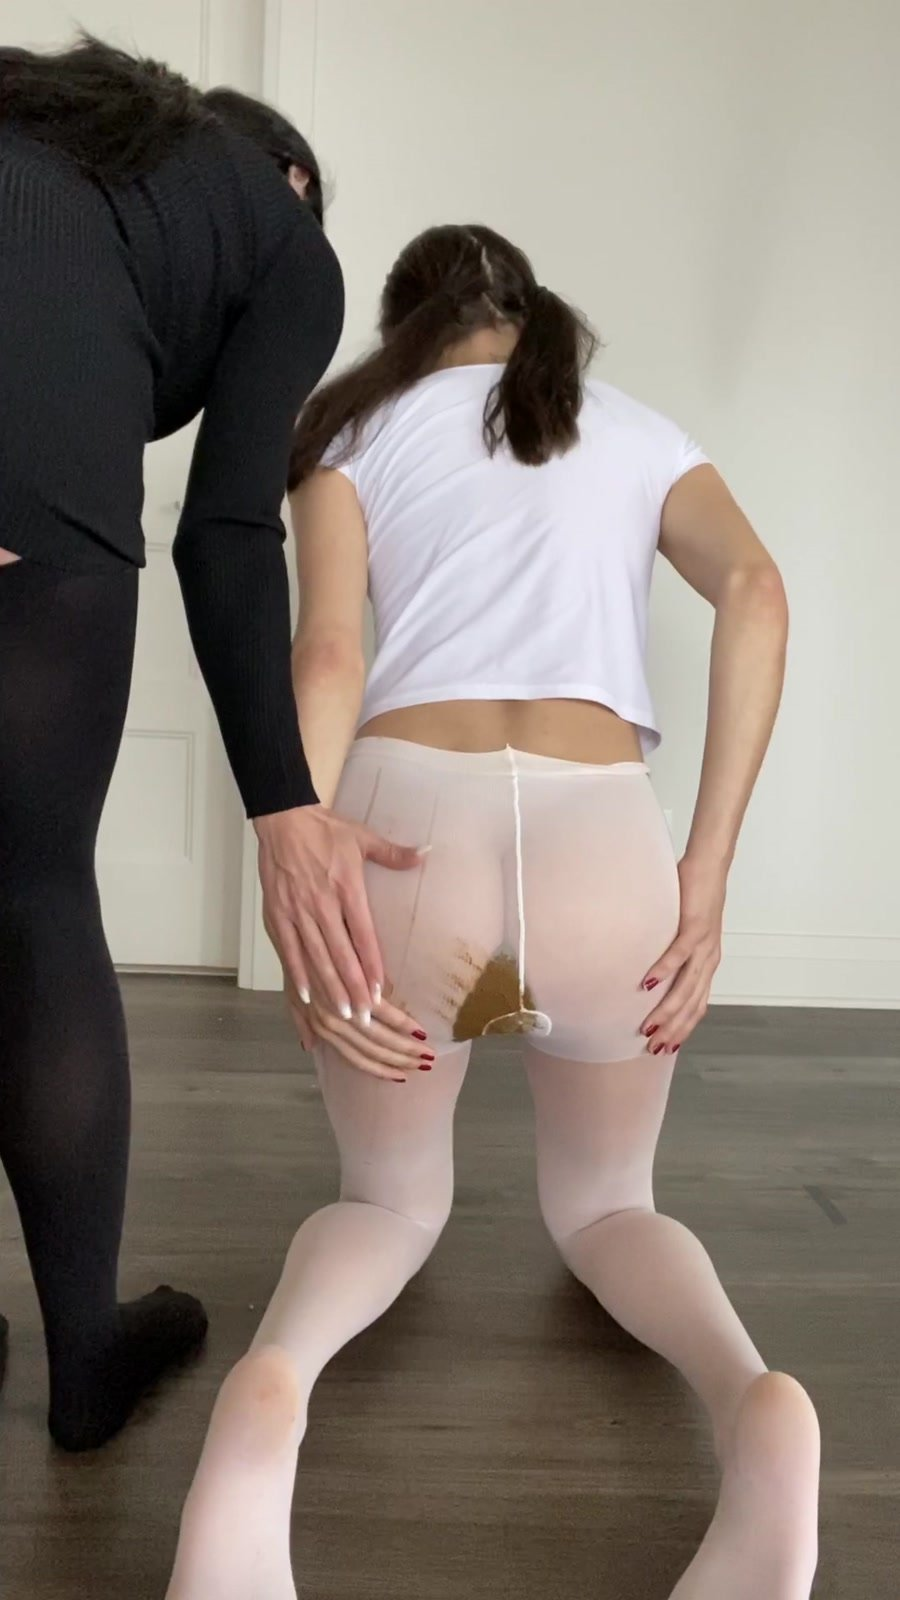 Shit In Pantyhose: (TheHealthyWhores) - Shitting myself inside white pantyhose [UltraHD 2K] - Solo, Teen